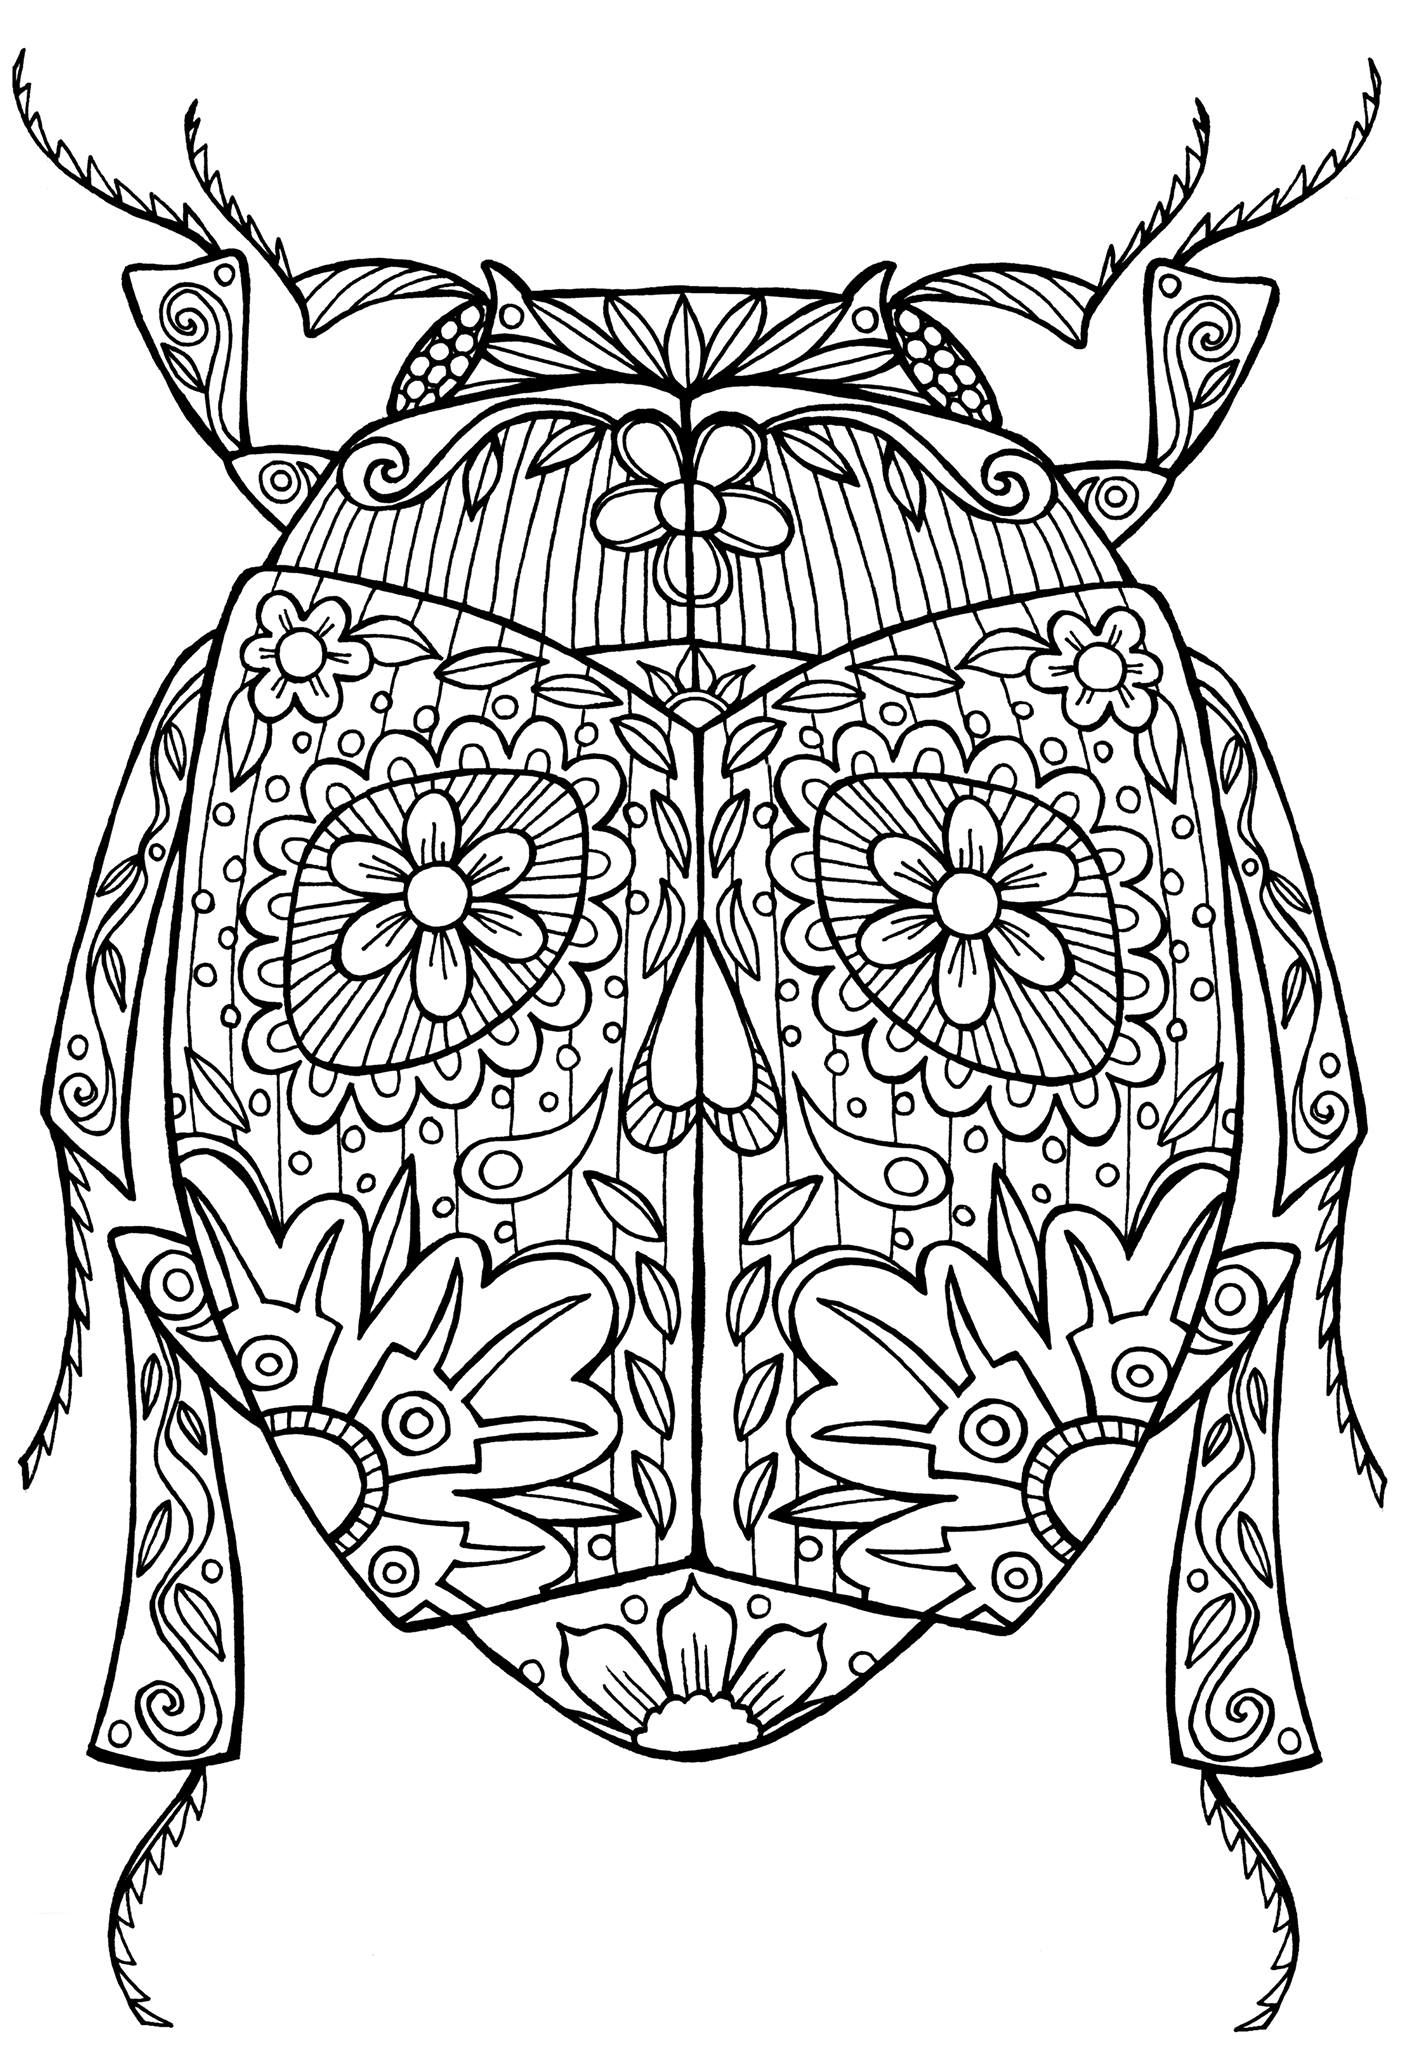 Anti stress colouring pages for adults - Beetle Bug Abstract Doodle Zentangle Coloring Pages Colouring Adult Detailed Advanced Printable Kleuren Voor Volwassenen Coloriage